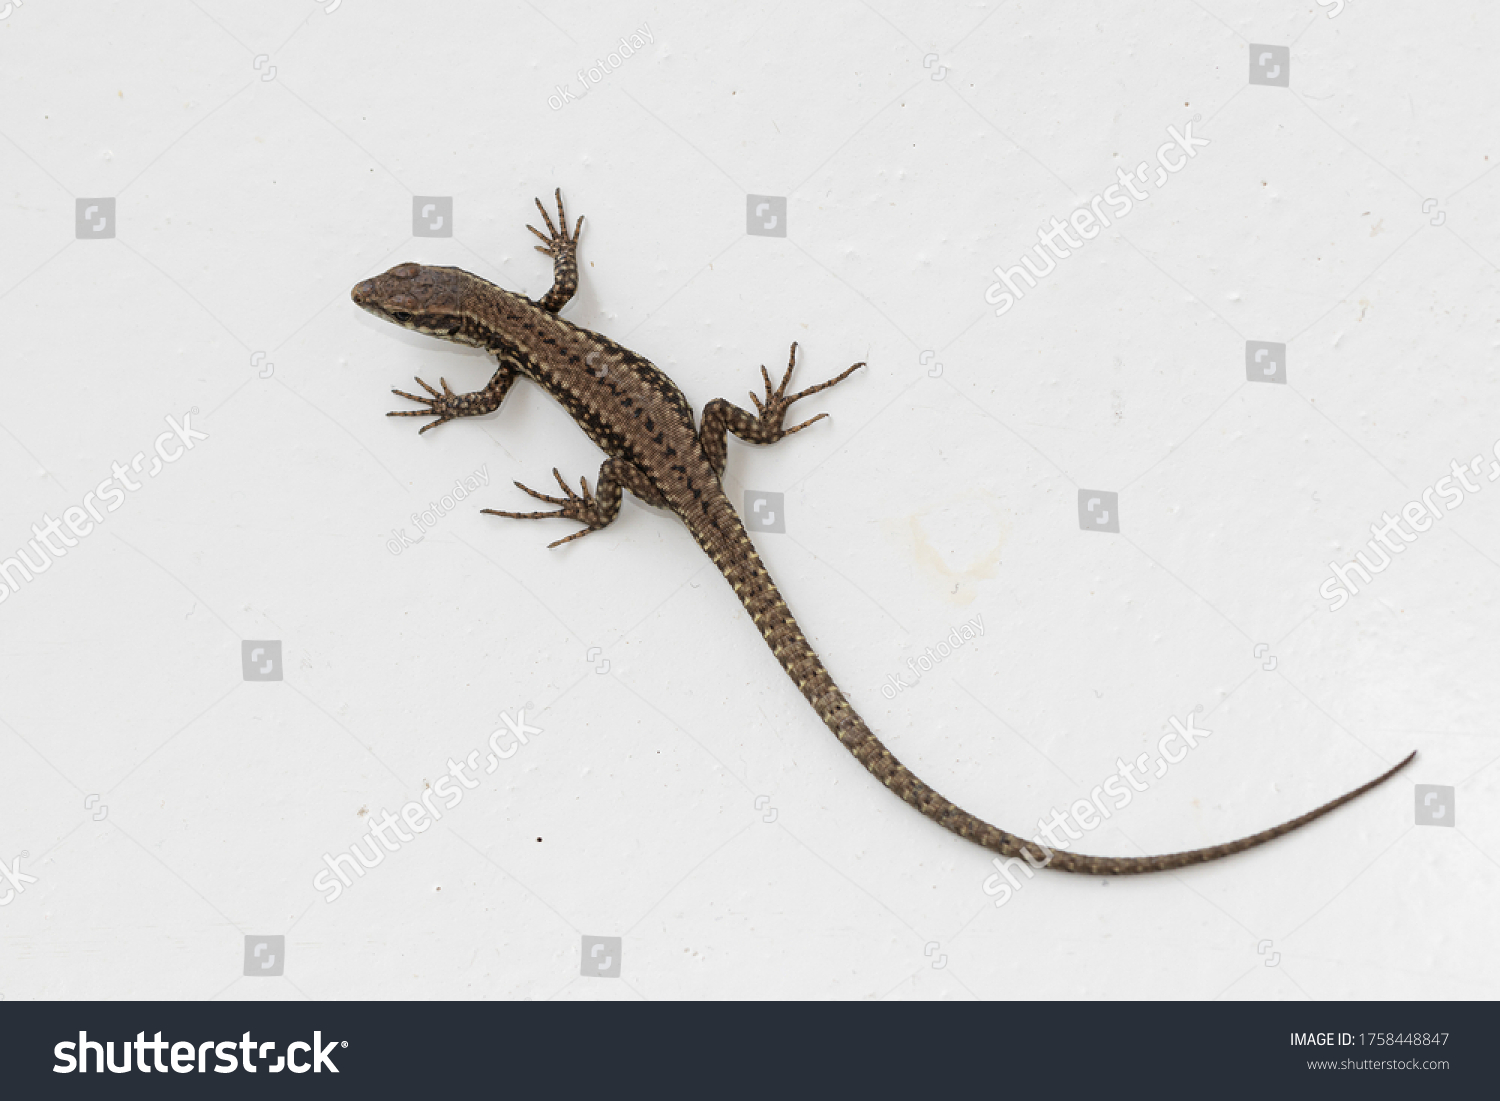 stock-photo-common-lizard-lat-lacerta-ag